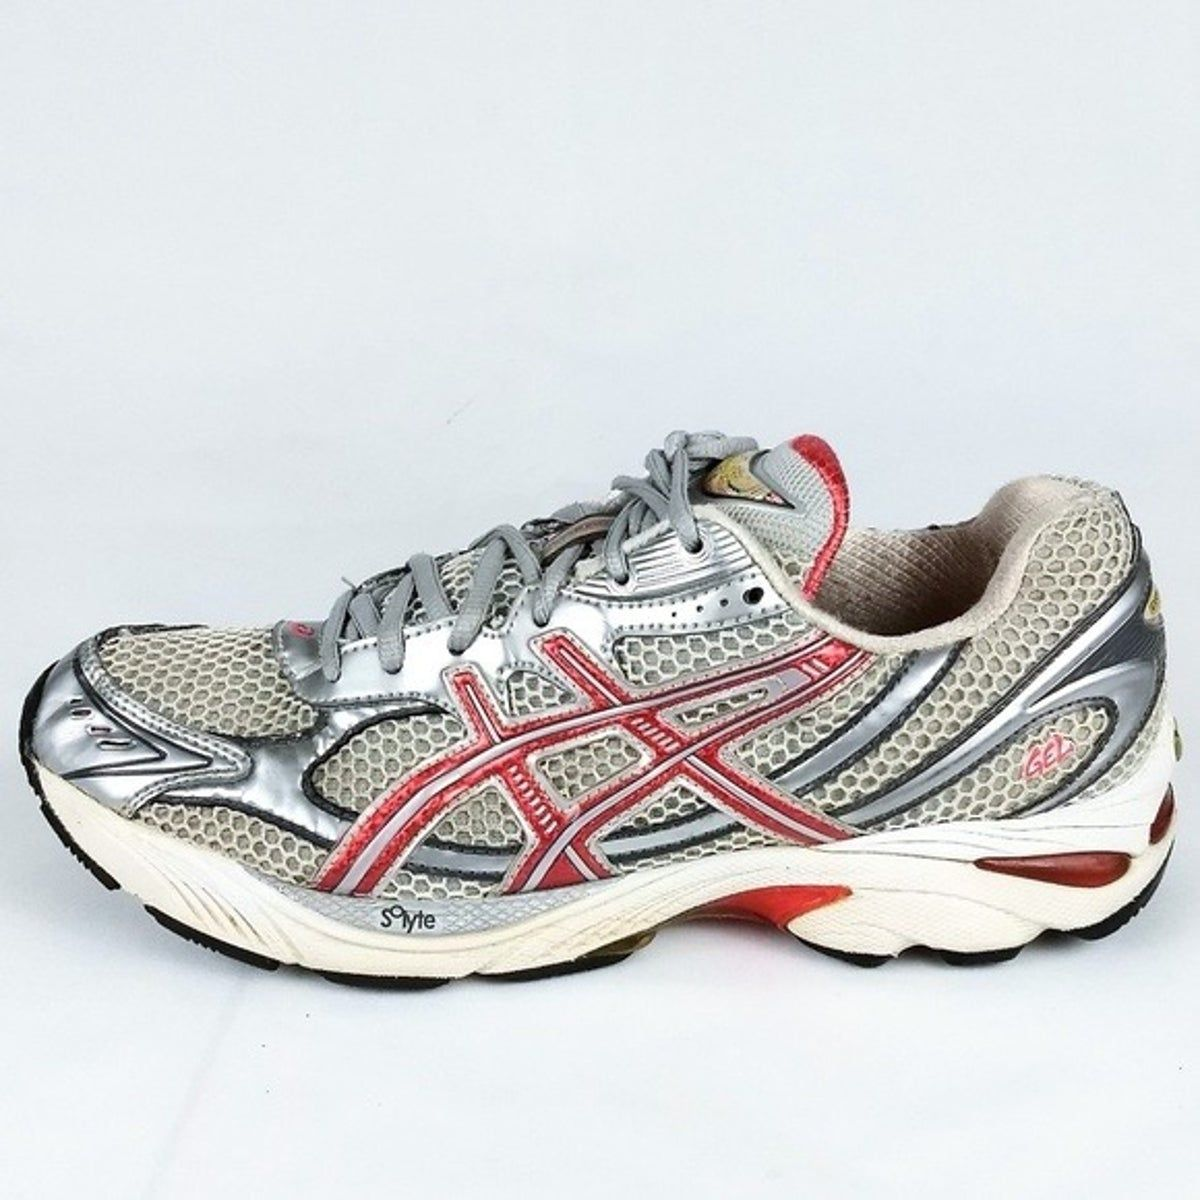 Asics Duomax GT-2150 Running Shoes 9.5 | Asics, Running shoes, Shoes